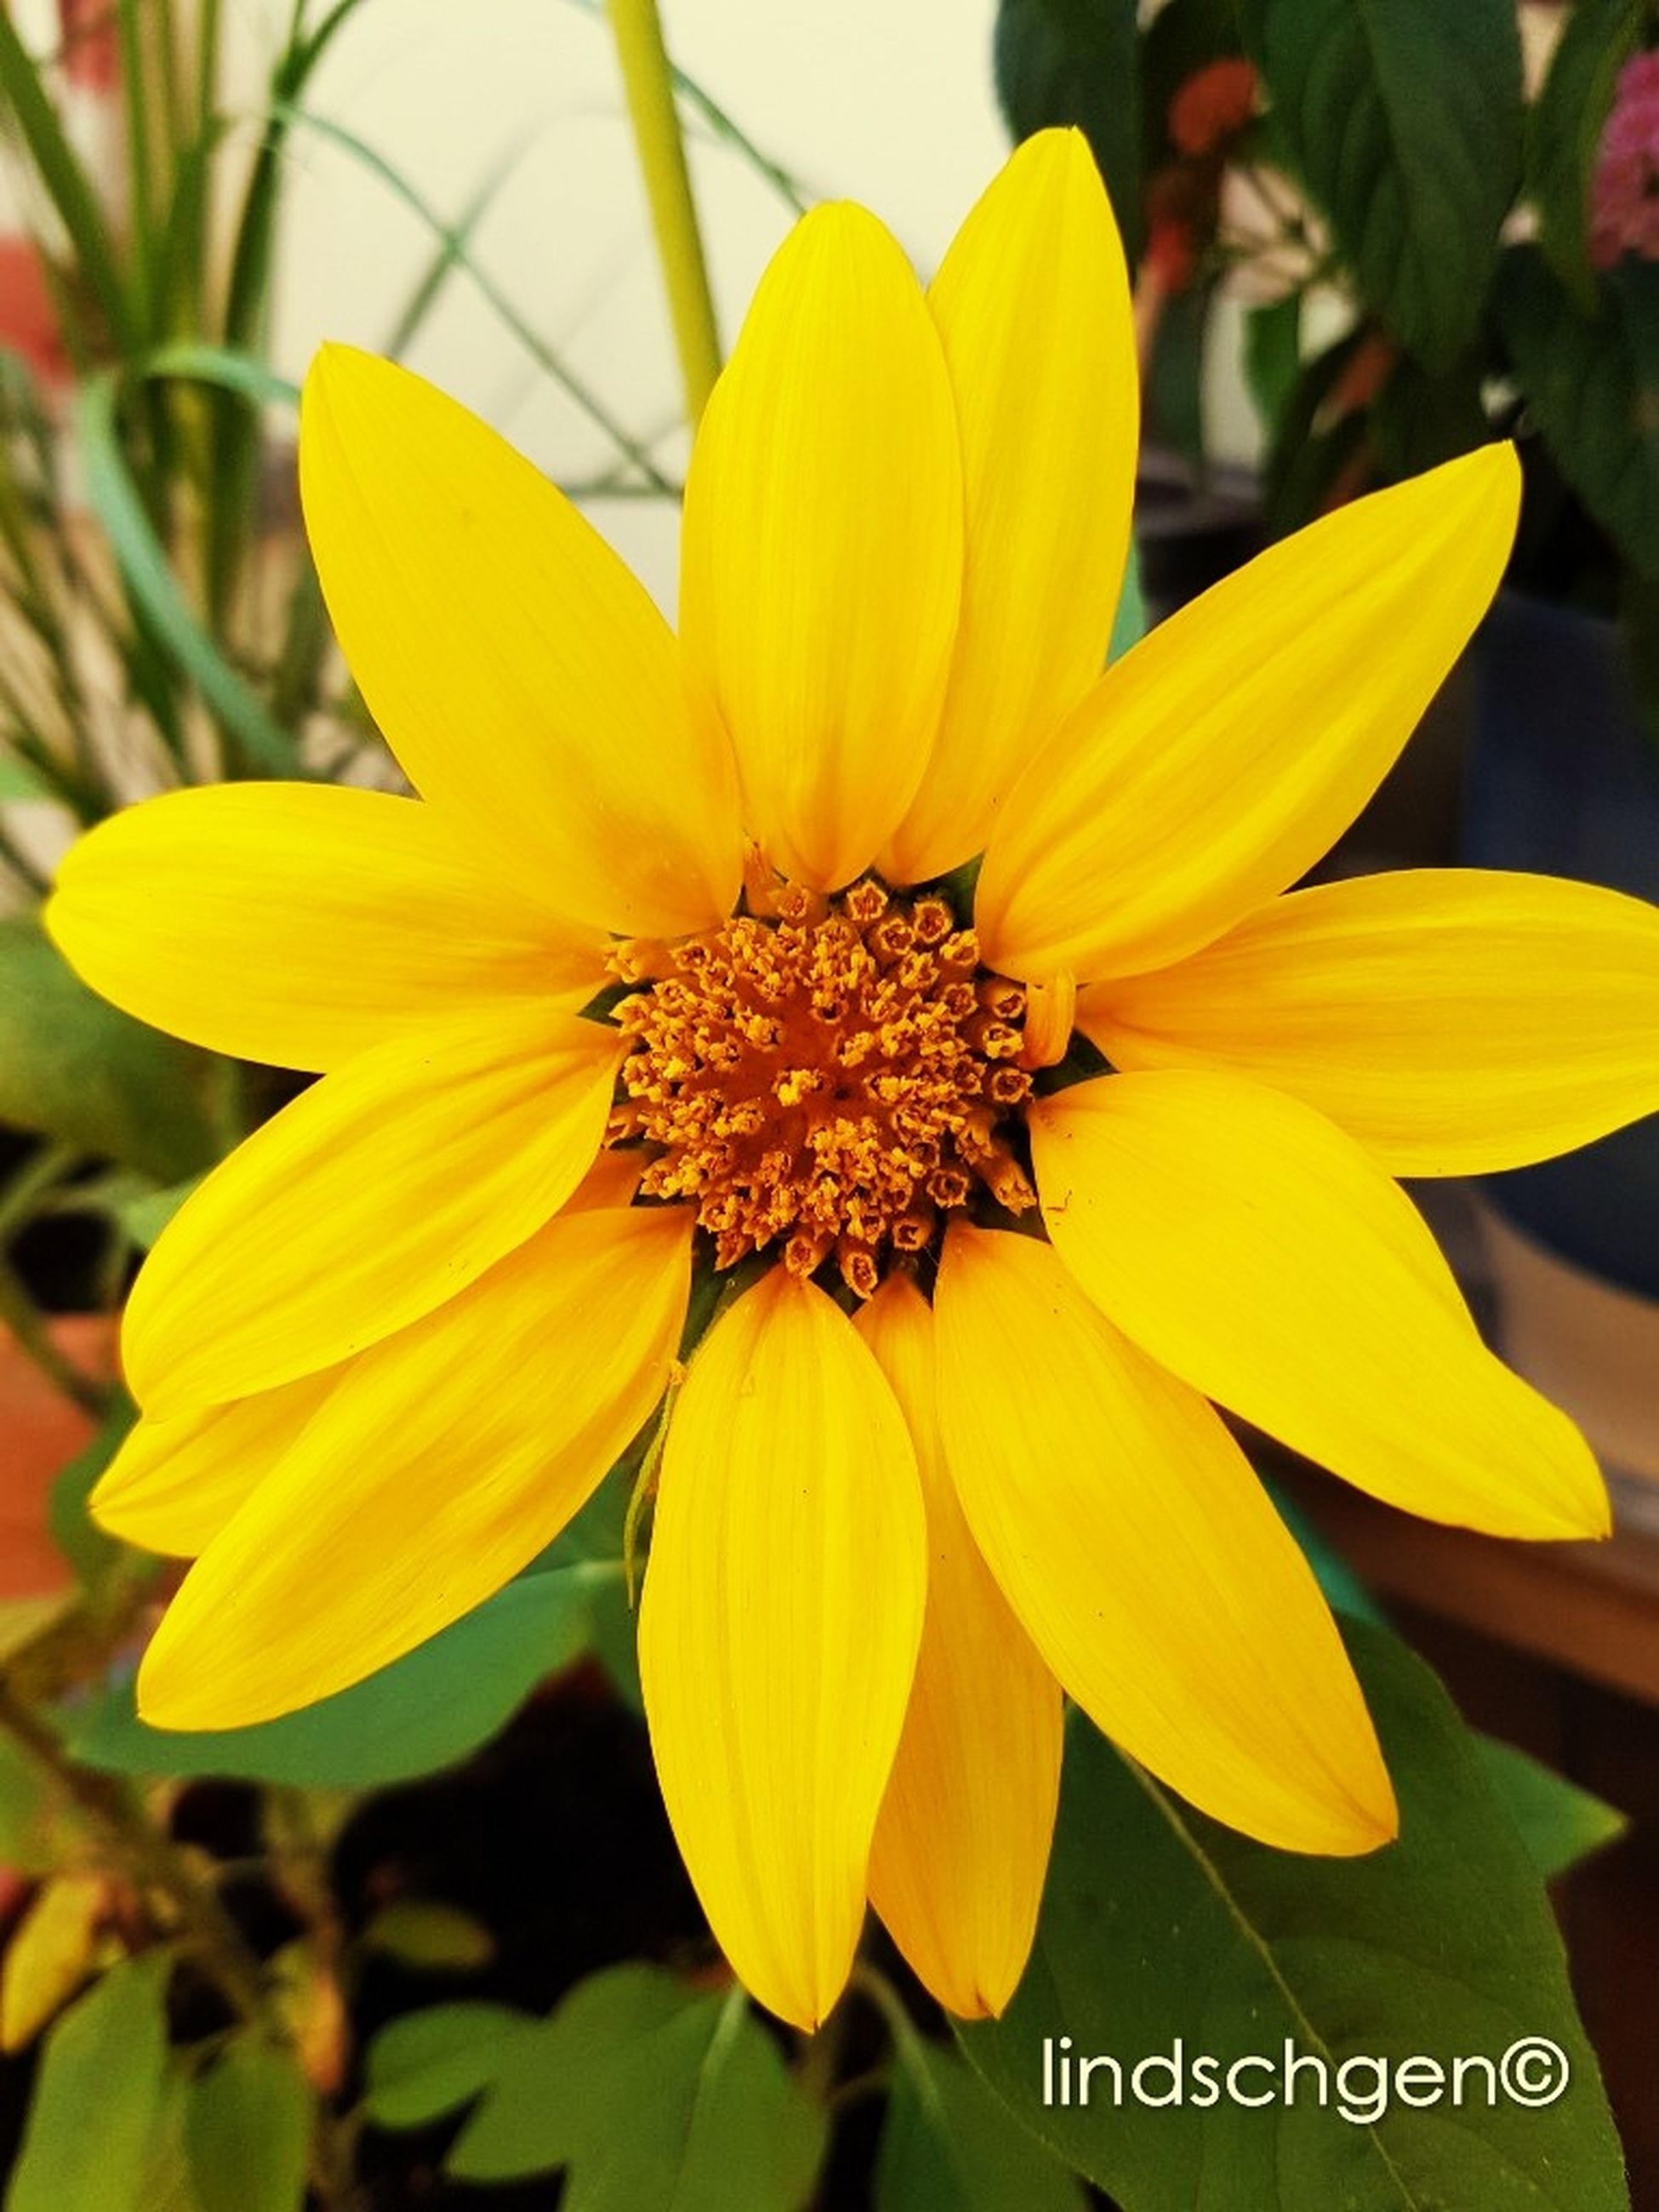 flower, petal, yellow, fragility, flower head, beauty in nature, freshness, growth, nature, pollen, close-up, blooming, day, plant, outdoors, no people